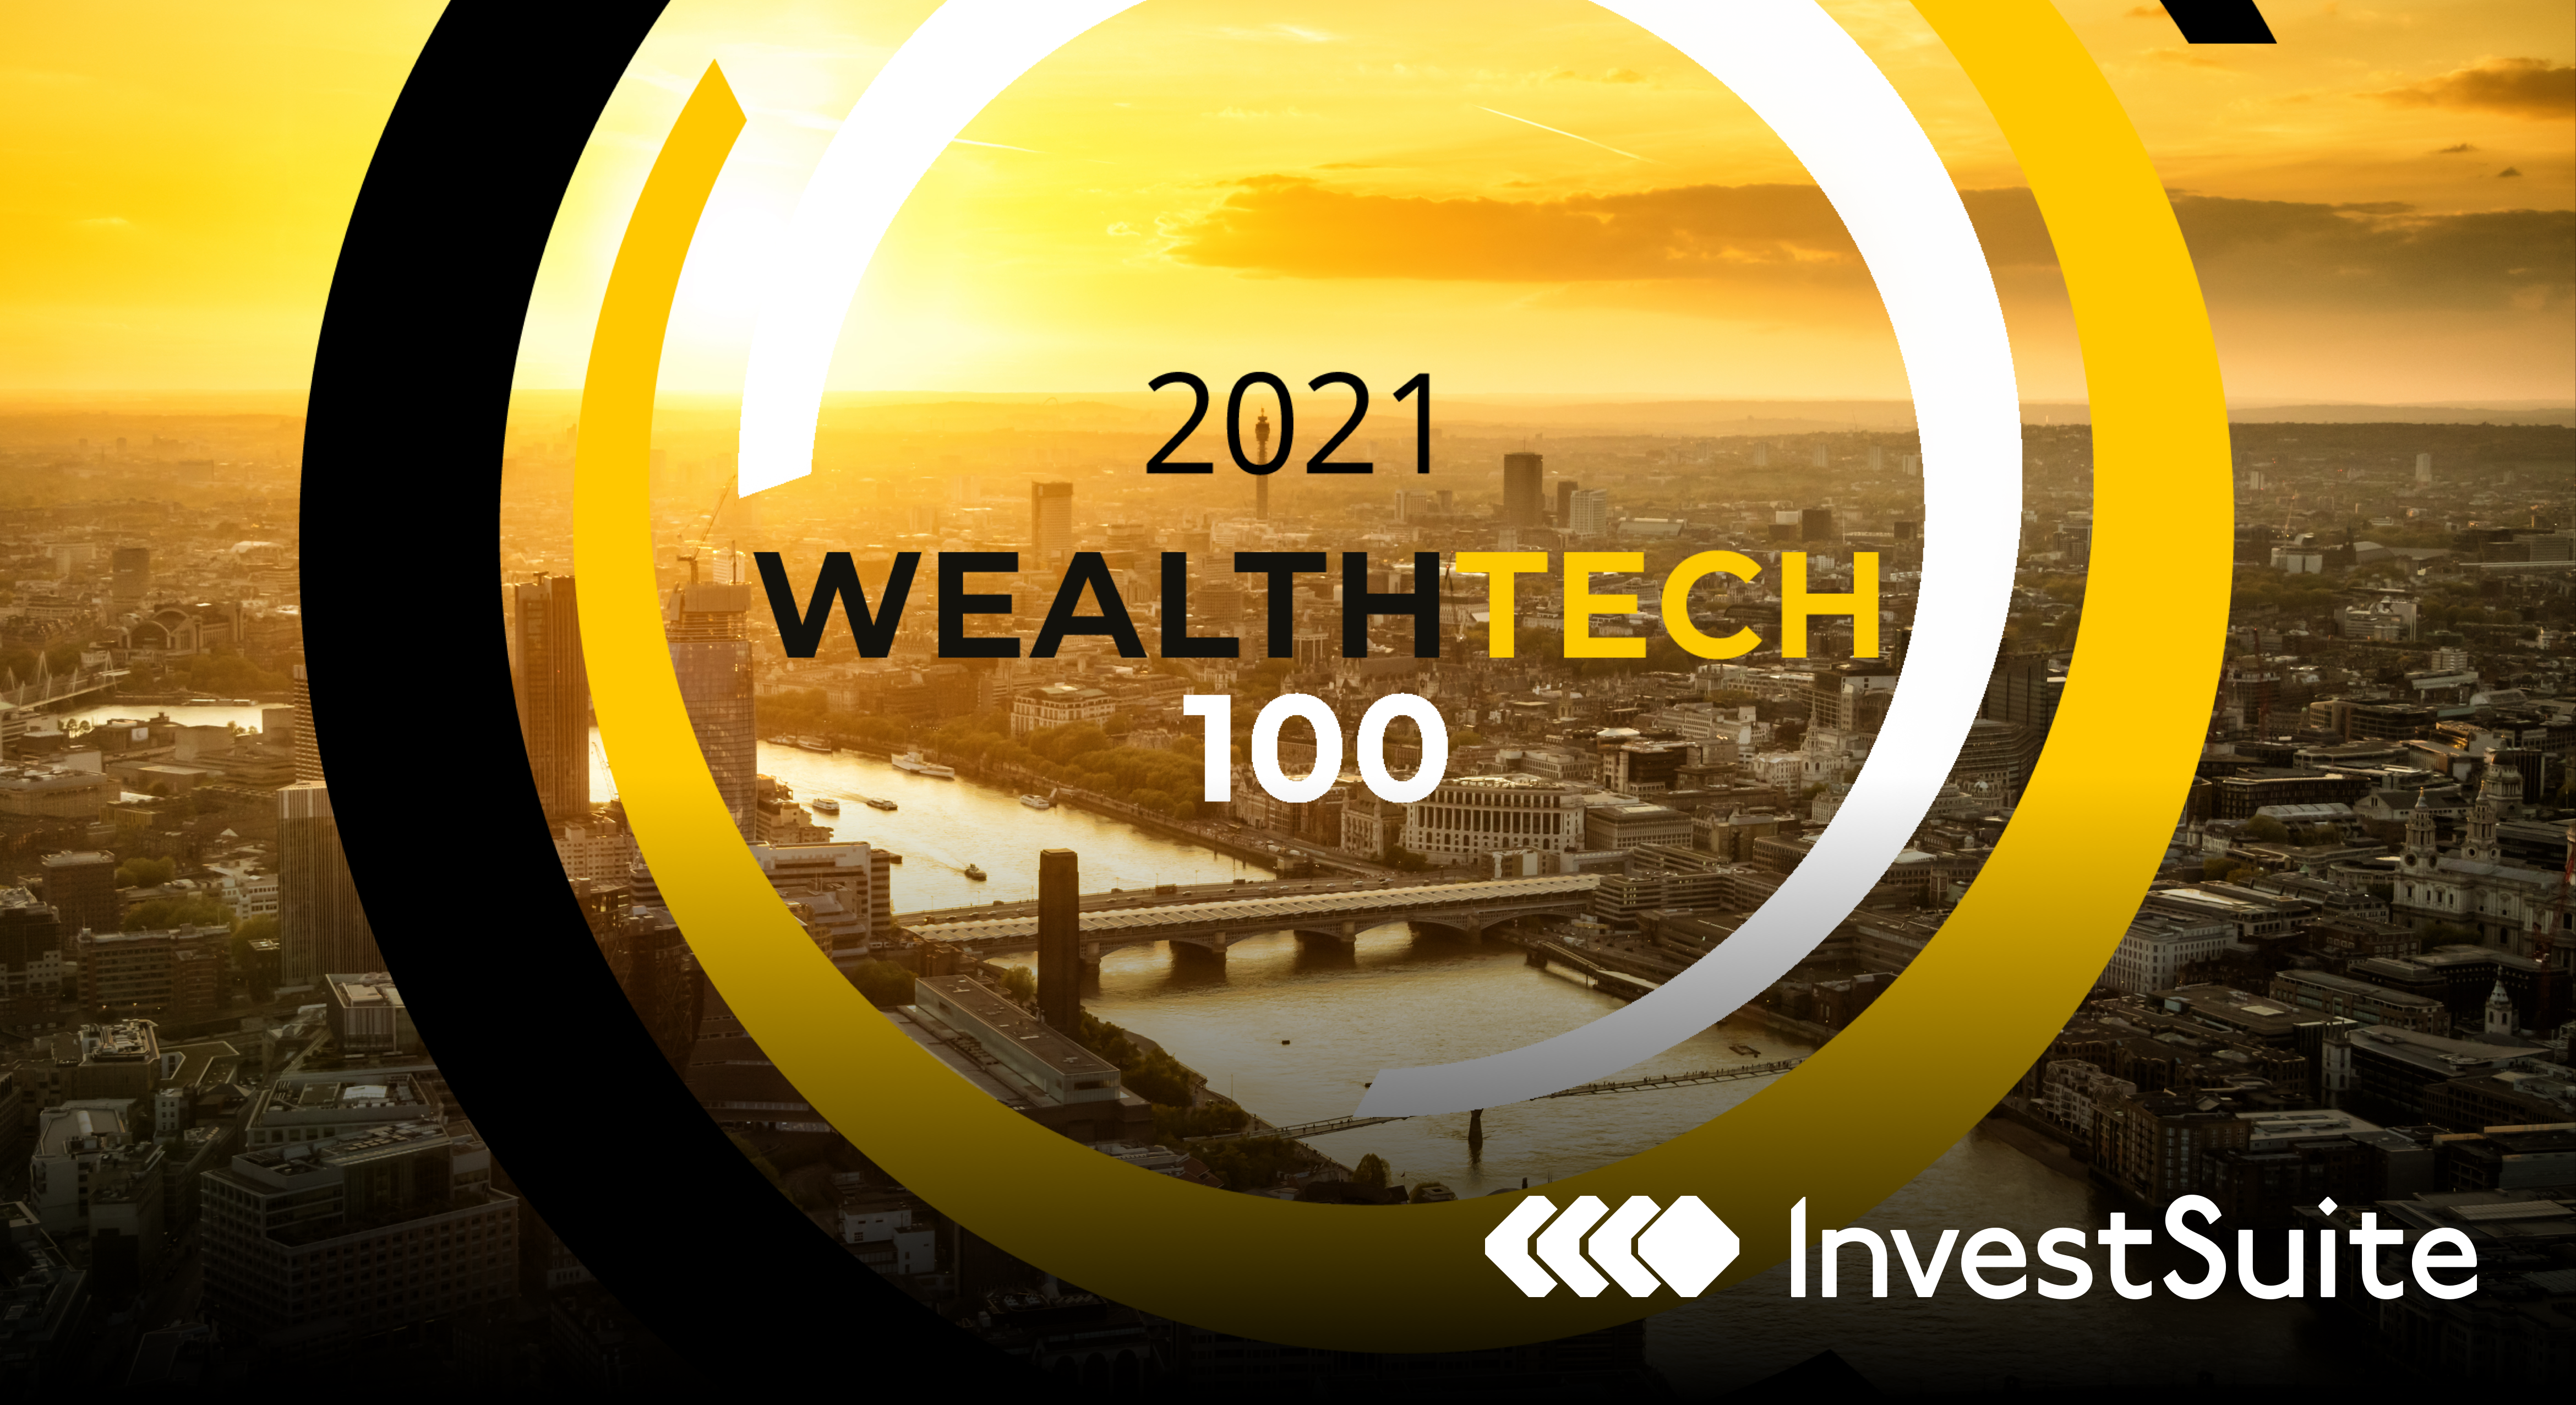 InvestSuite has been recognised as one of the world's most innovative WealthTech companies for 2021